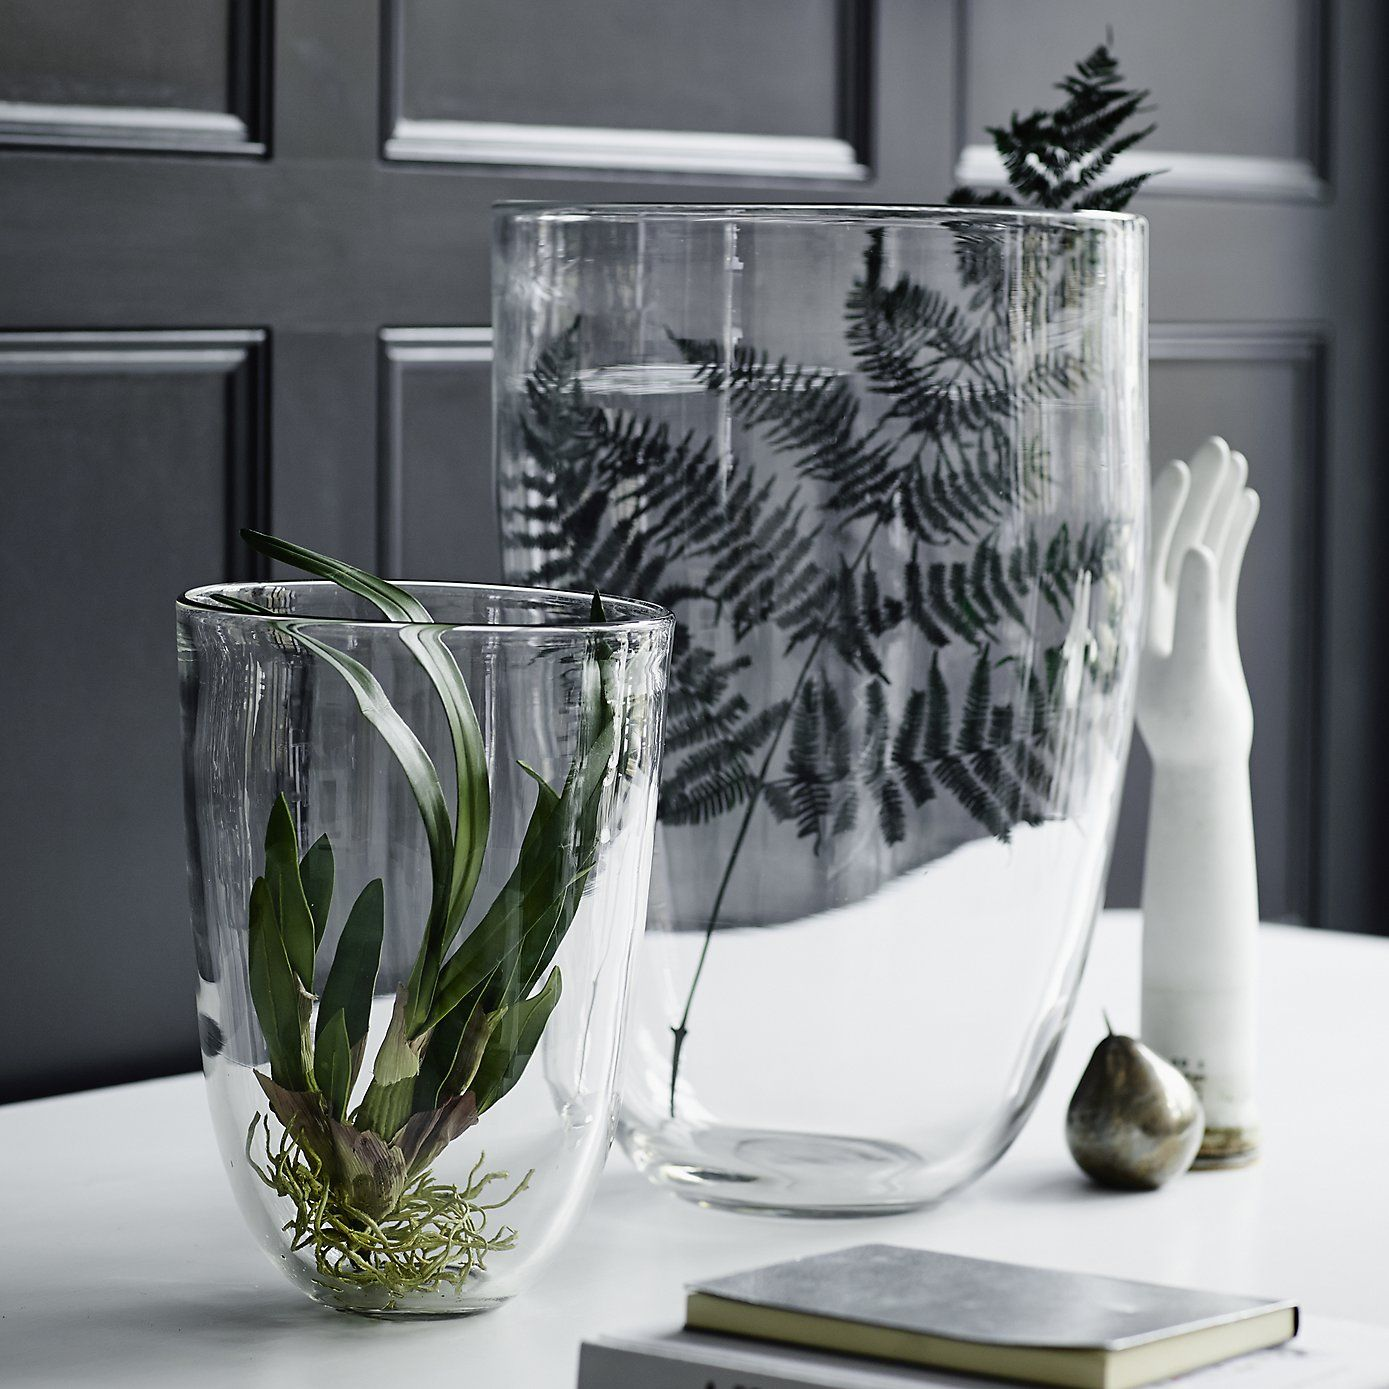 Ultimate henry dean vase the white company styling pinterest update your home with our stylish accessories from our statement making frame wall sets smoked glass vases and jewellery boxes to wicker baskets reviewsmspy